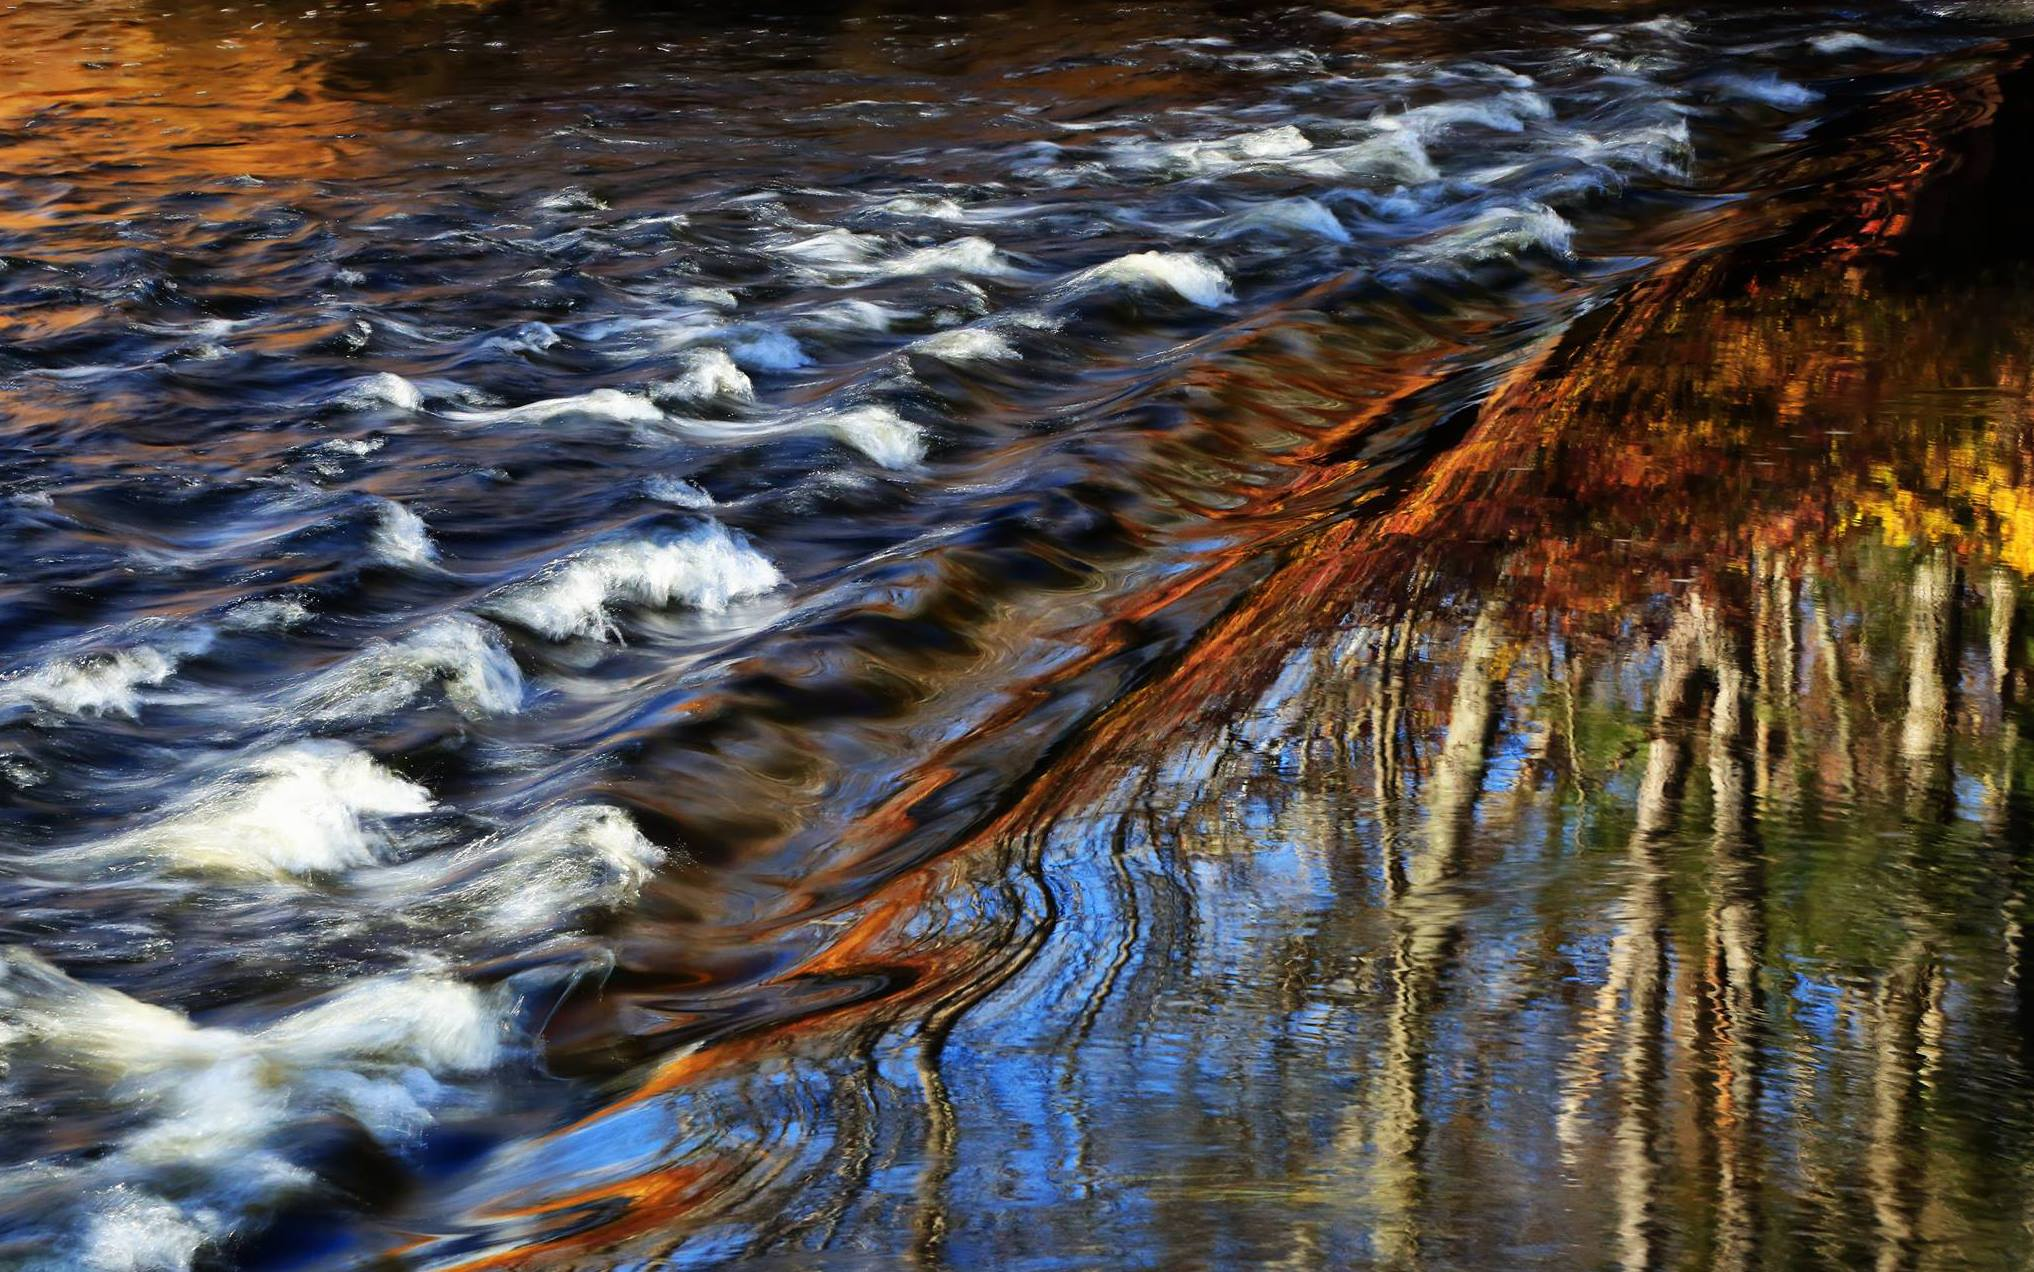 © Water Reflections. Photographer Nelin Reisman. Winning 2015 Photograph of the YOUR FOCUS ON THE WORLD Photography World Contest @ photographyworld.org